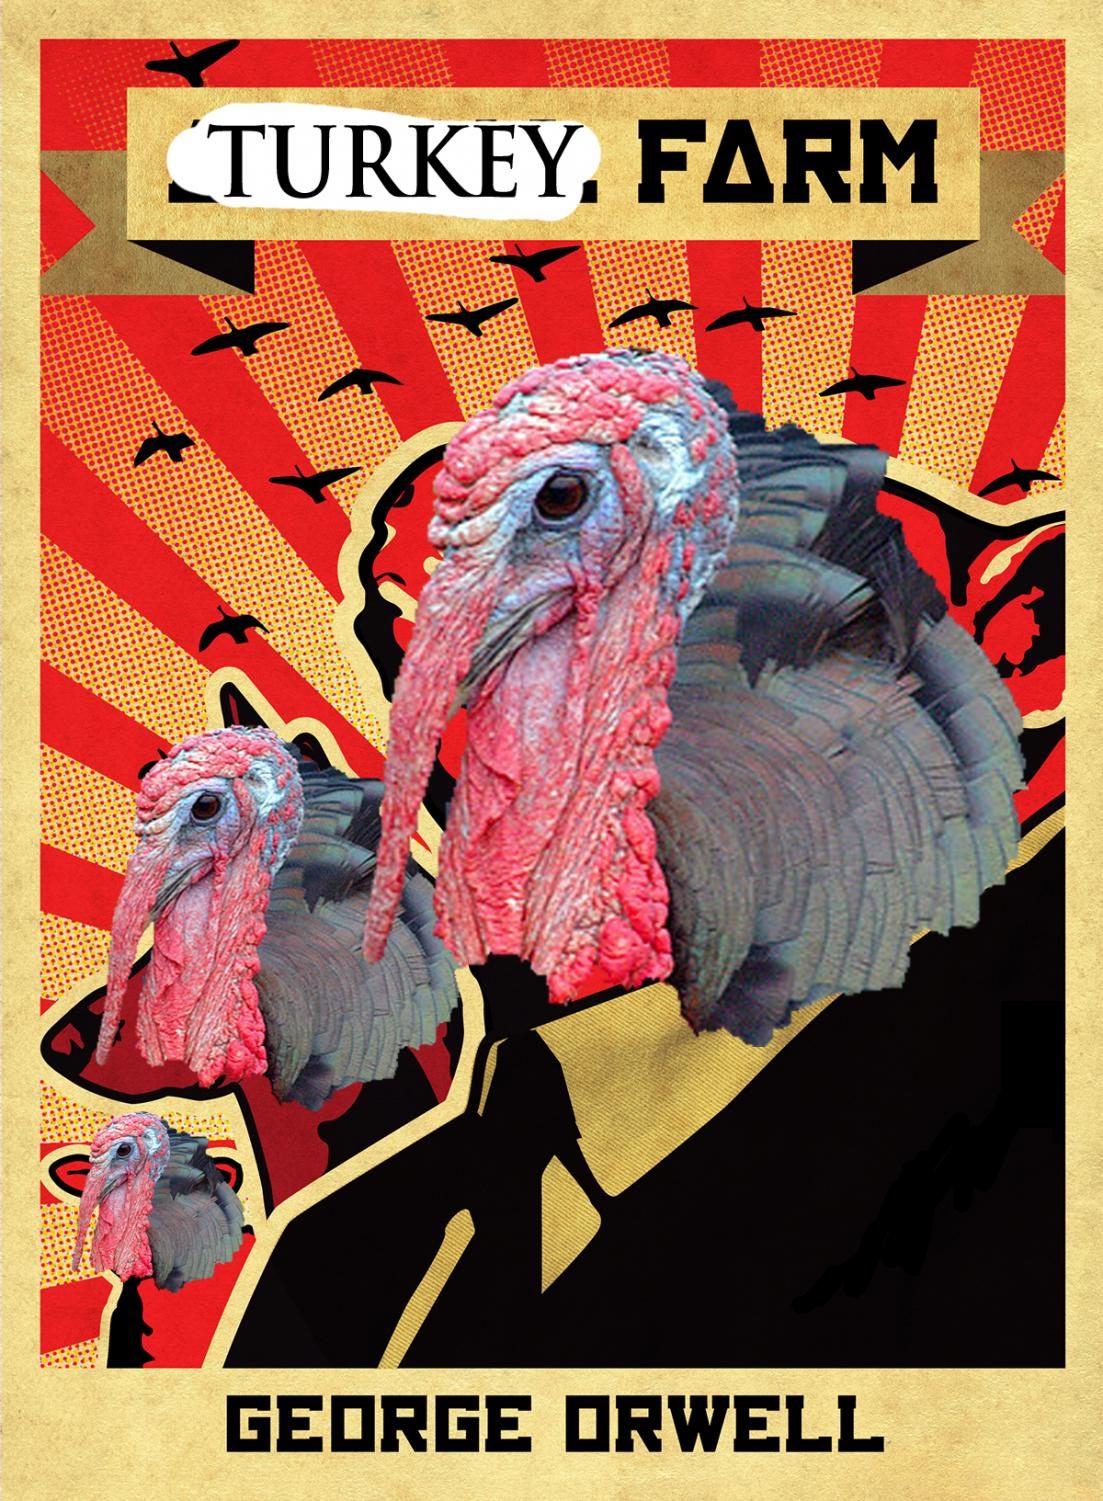 The turkeys will rise again.